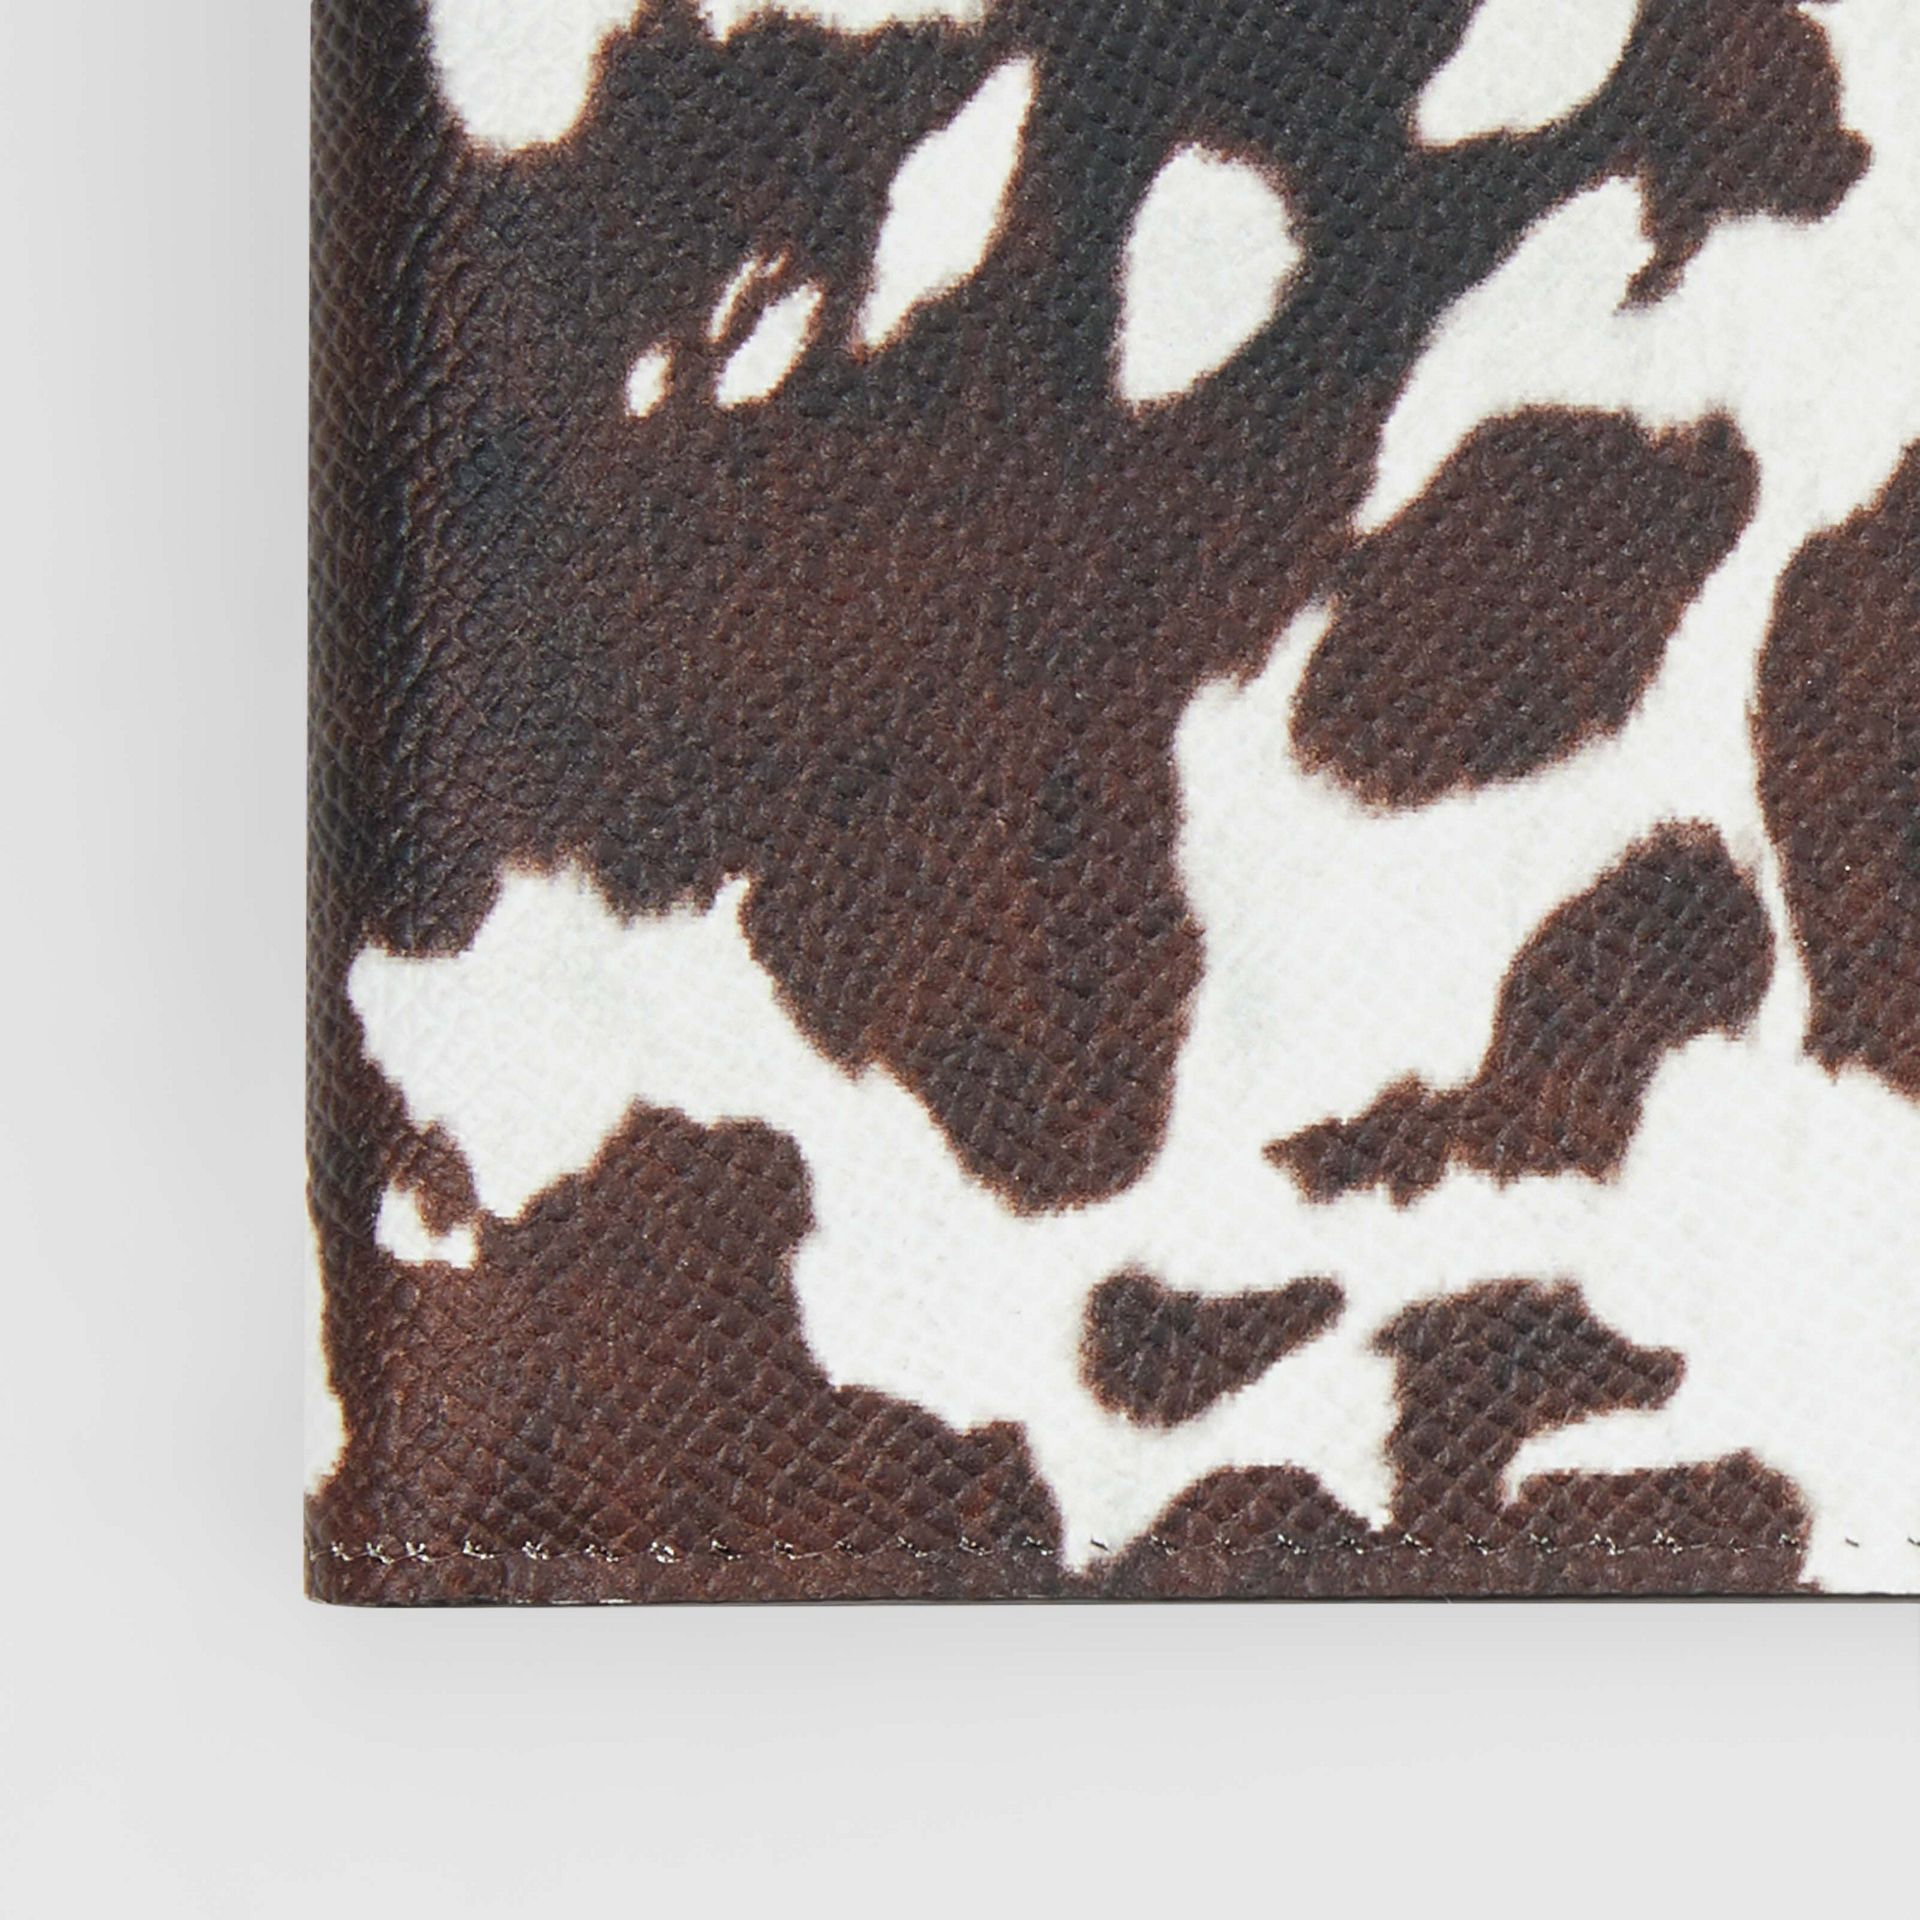 Cow Print Leather International Bifold Wallet in Black/white - Men | Burberry United States - gallery image 1